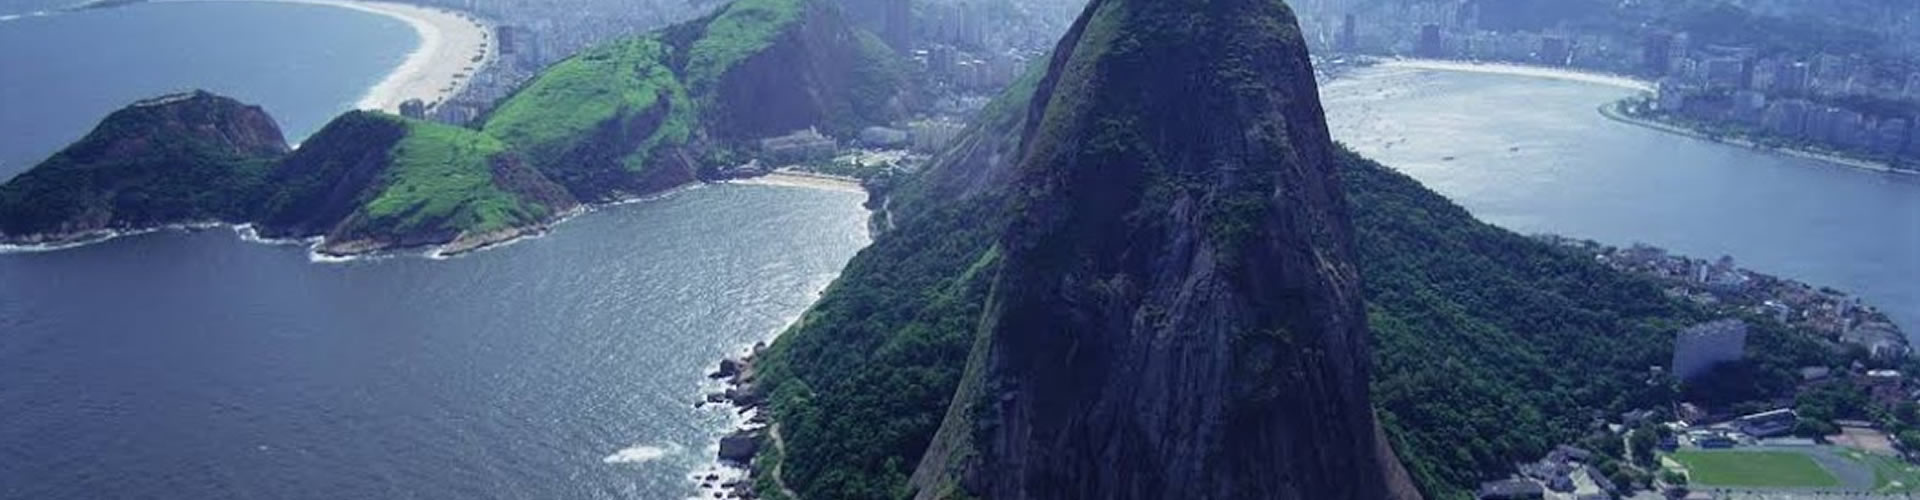 holidays vacations trips travel Brasil package tours Adventures